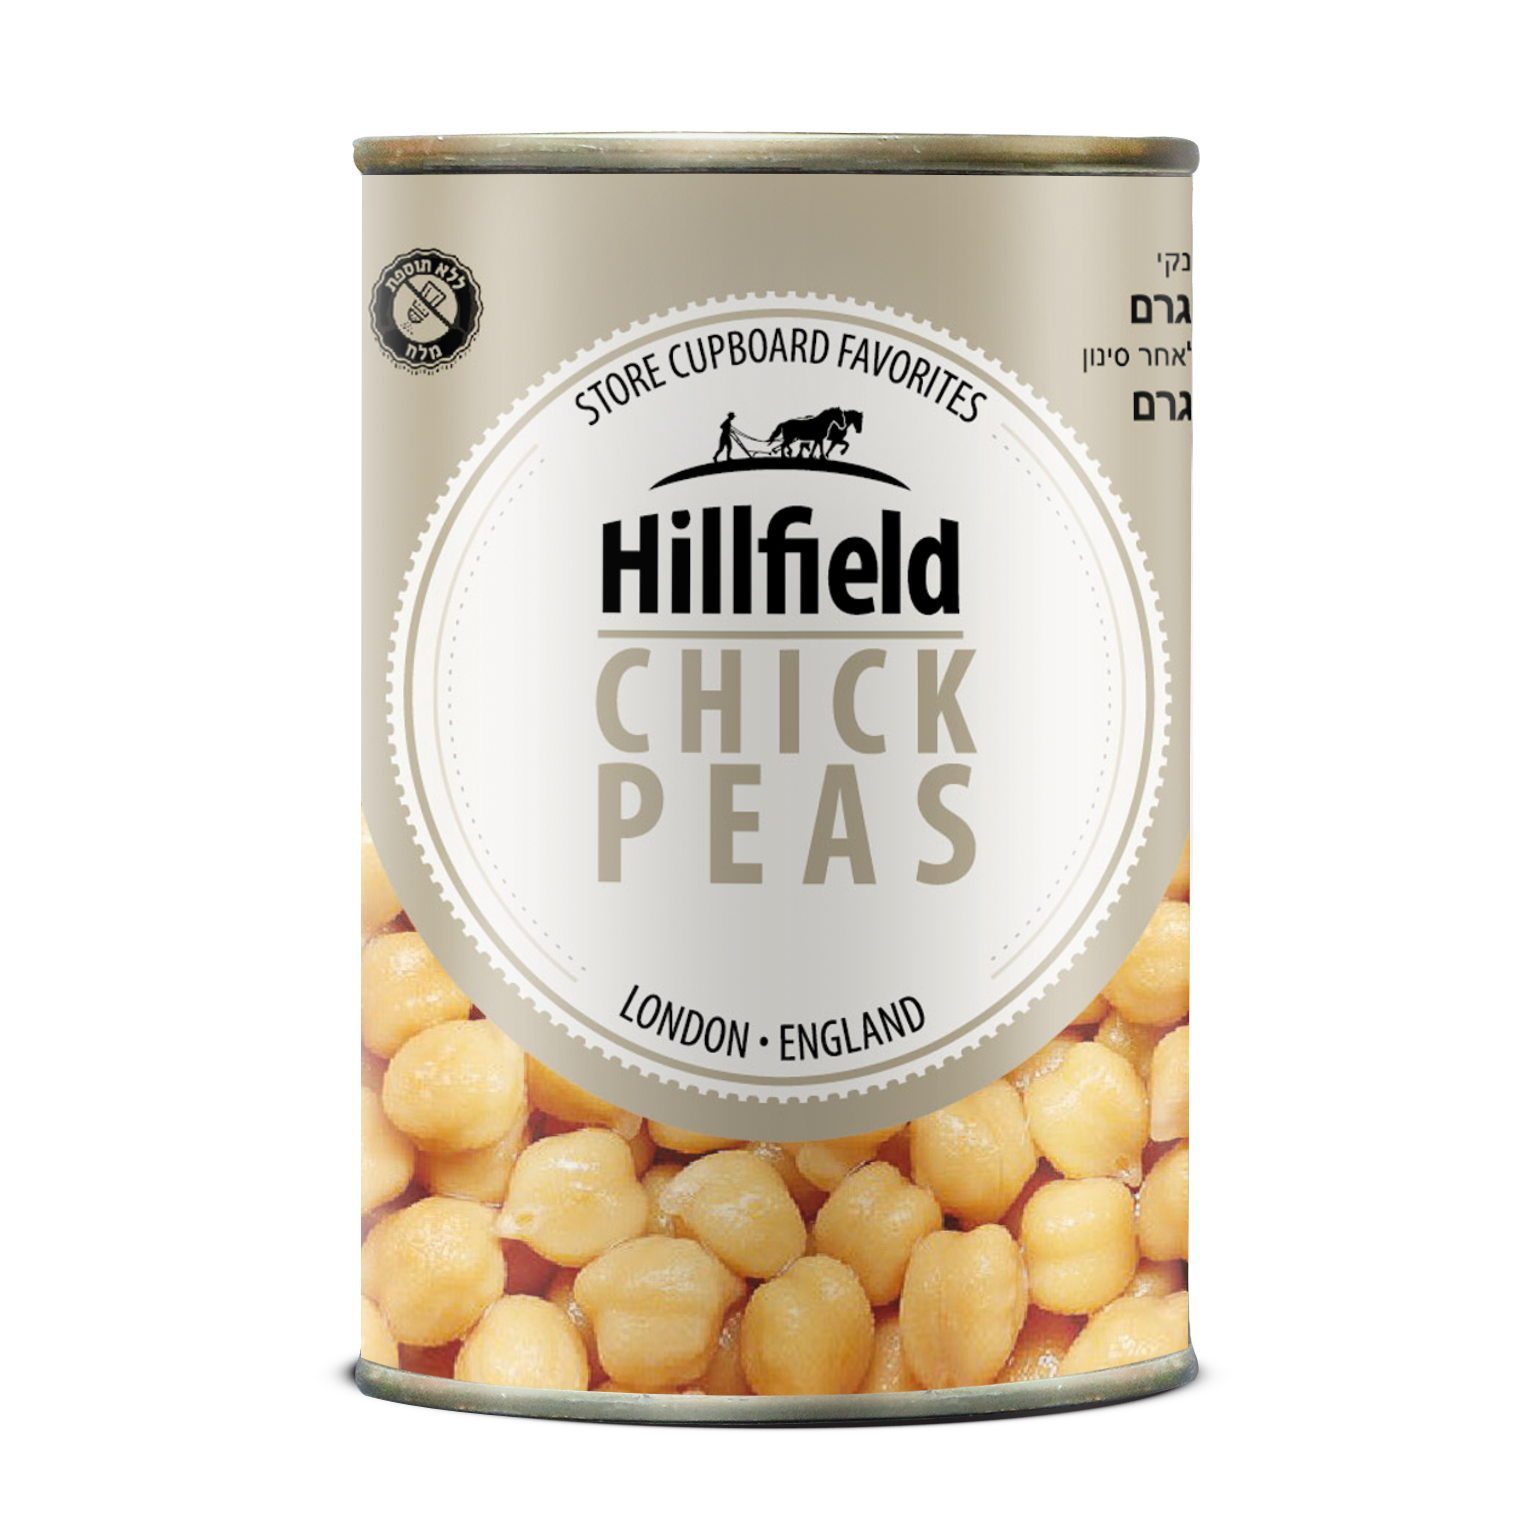 Hillfield Chickpeas - No Salt added, Italy, Legummes, Ready to eat, instant food, Coppola Foods